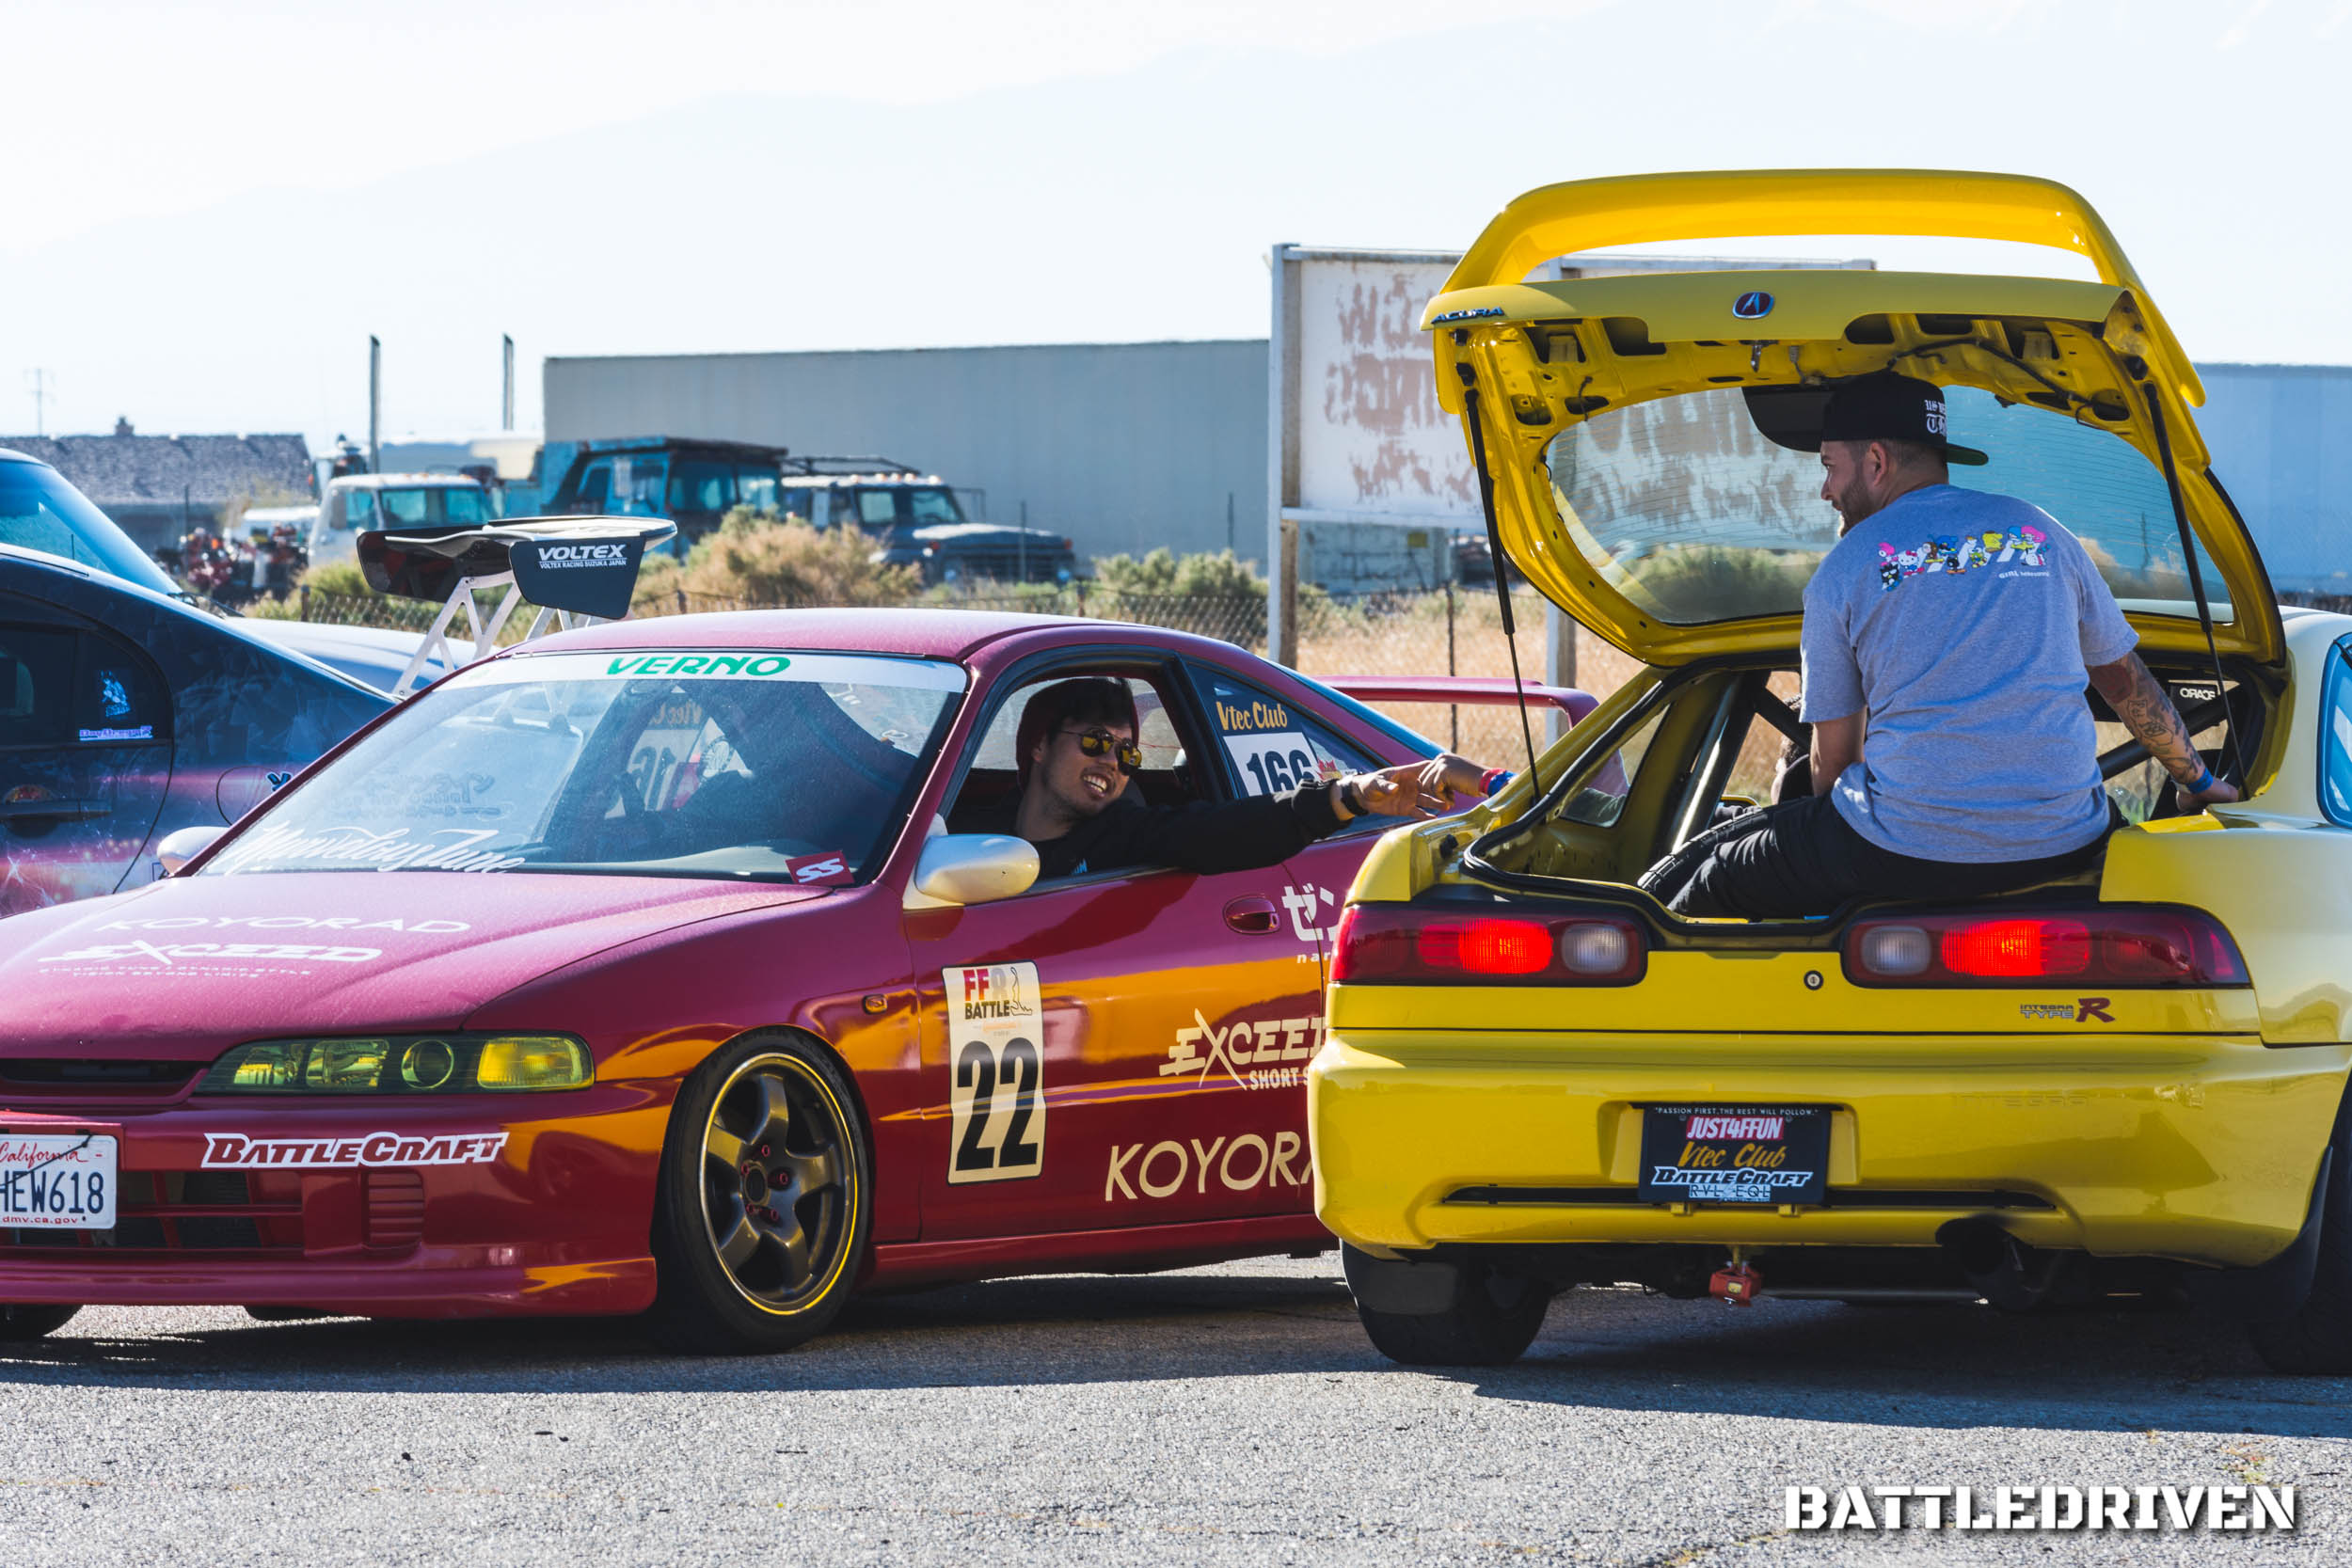 Vtec Club USA brings out some of the best Honda powered platforms to the time attack grid, but it's not always the cars that leave a lasting memory. Friendship and driver camaraderie though, is a different story.